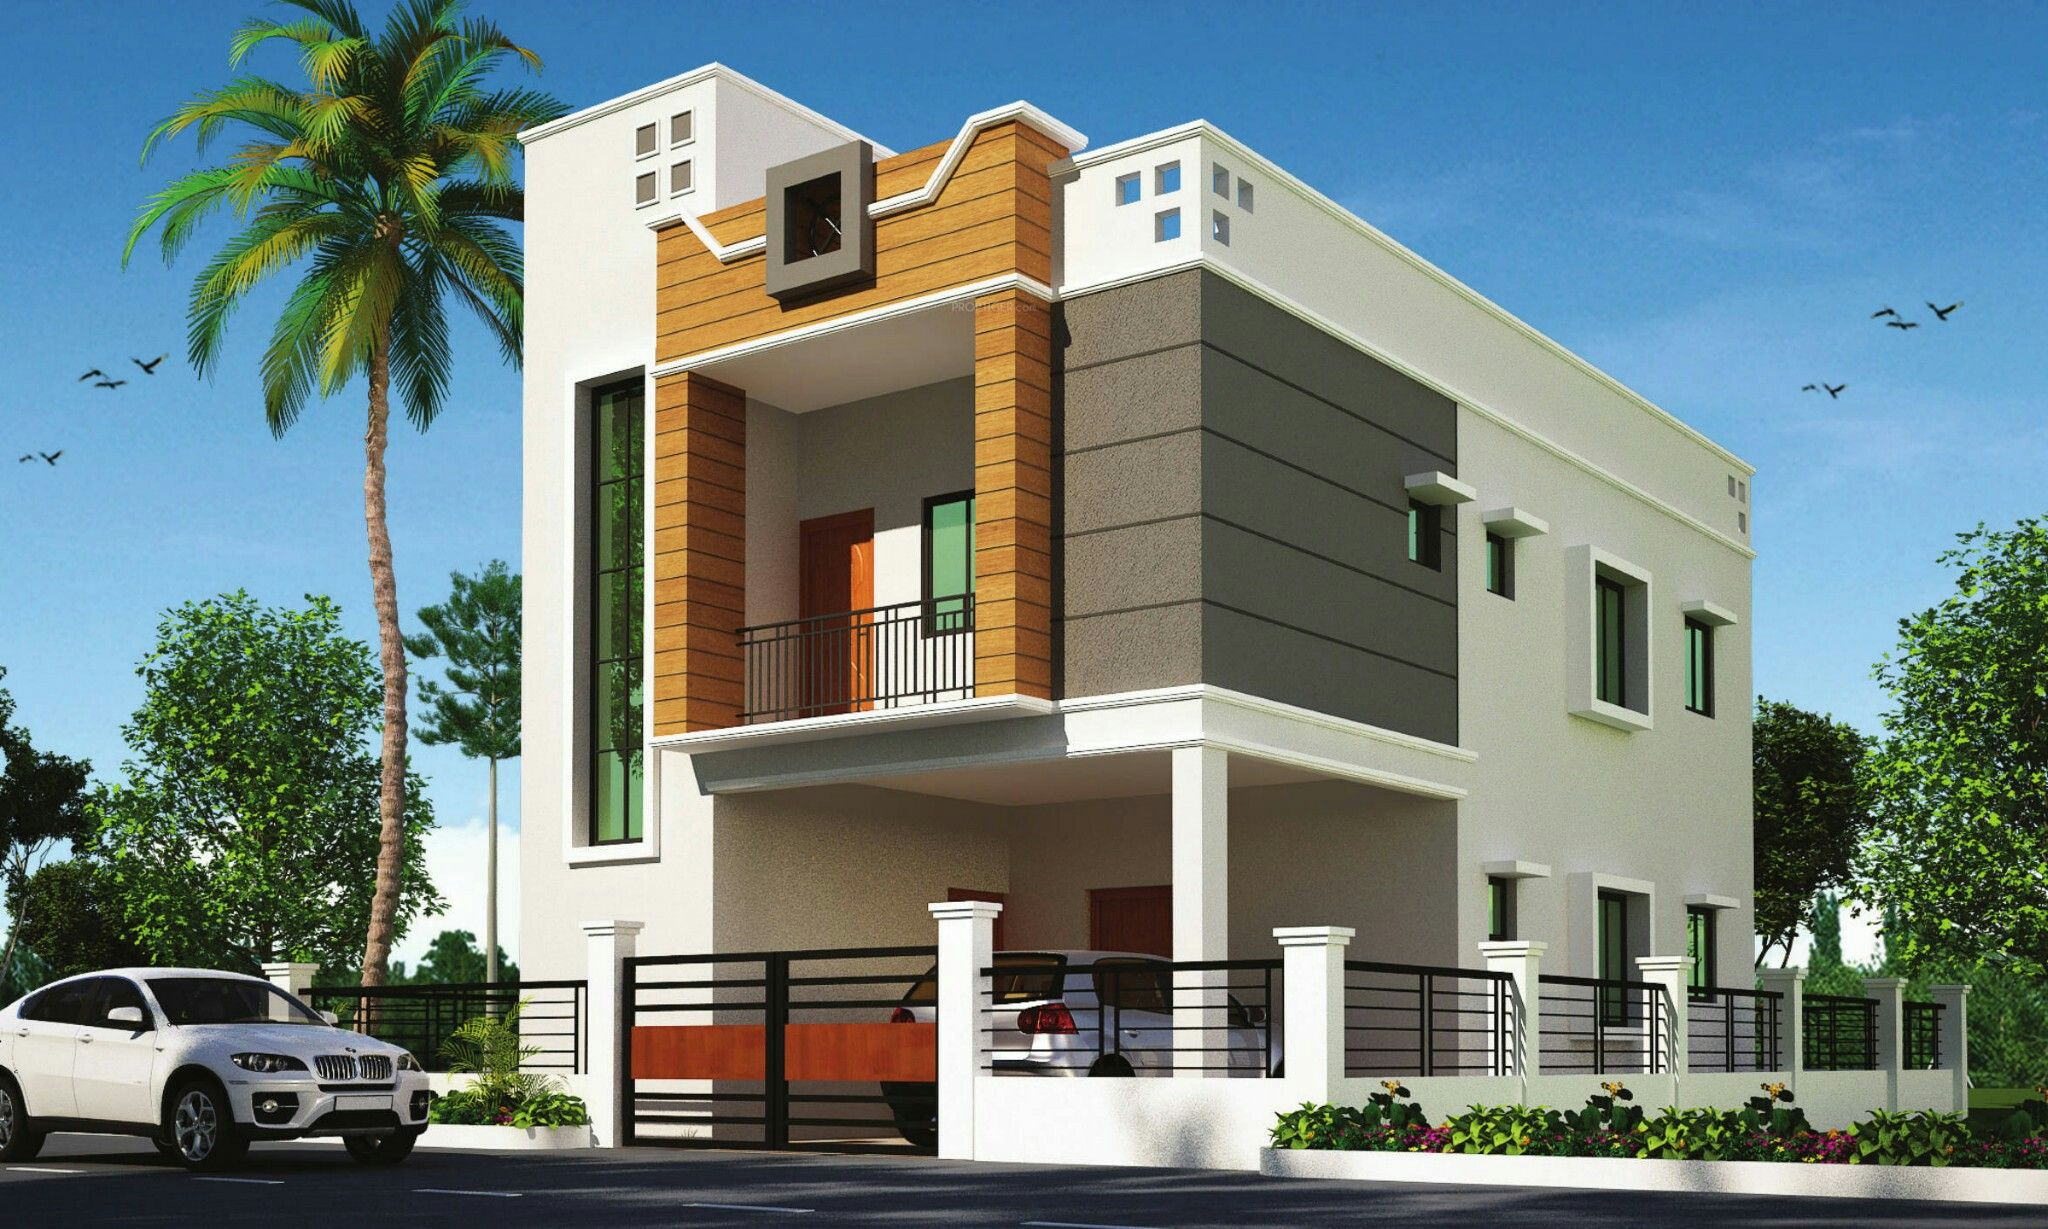 Residential And Commercial Property In Nagpur Best Property In Nagpur Designed By Adiva Best Small House Designs Architect Design House Village House Design